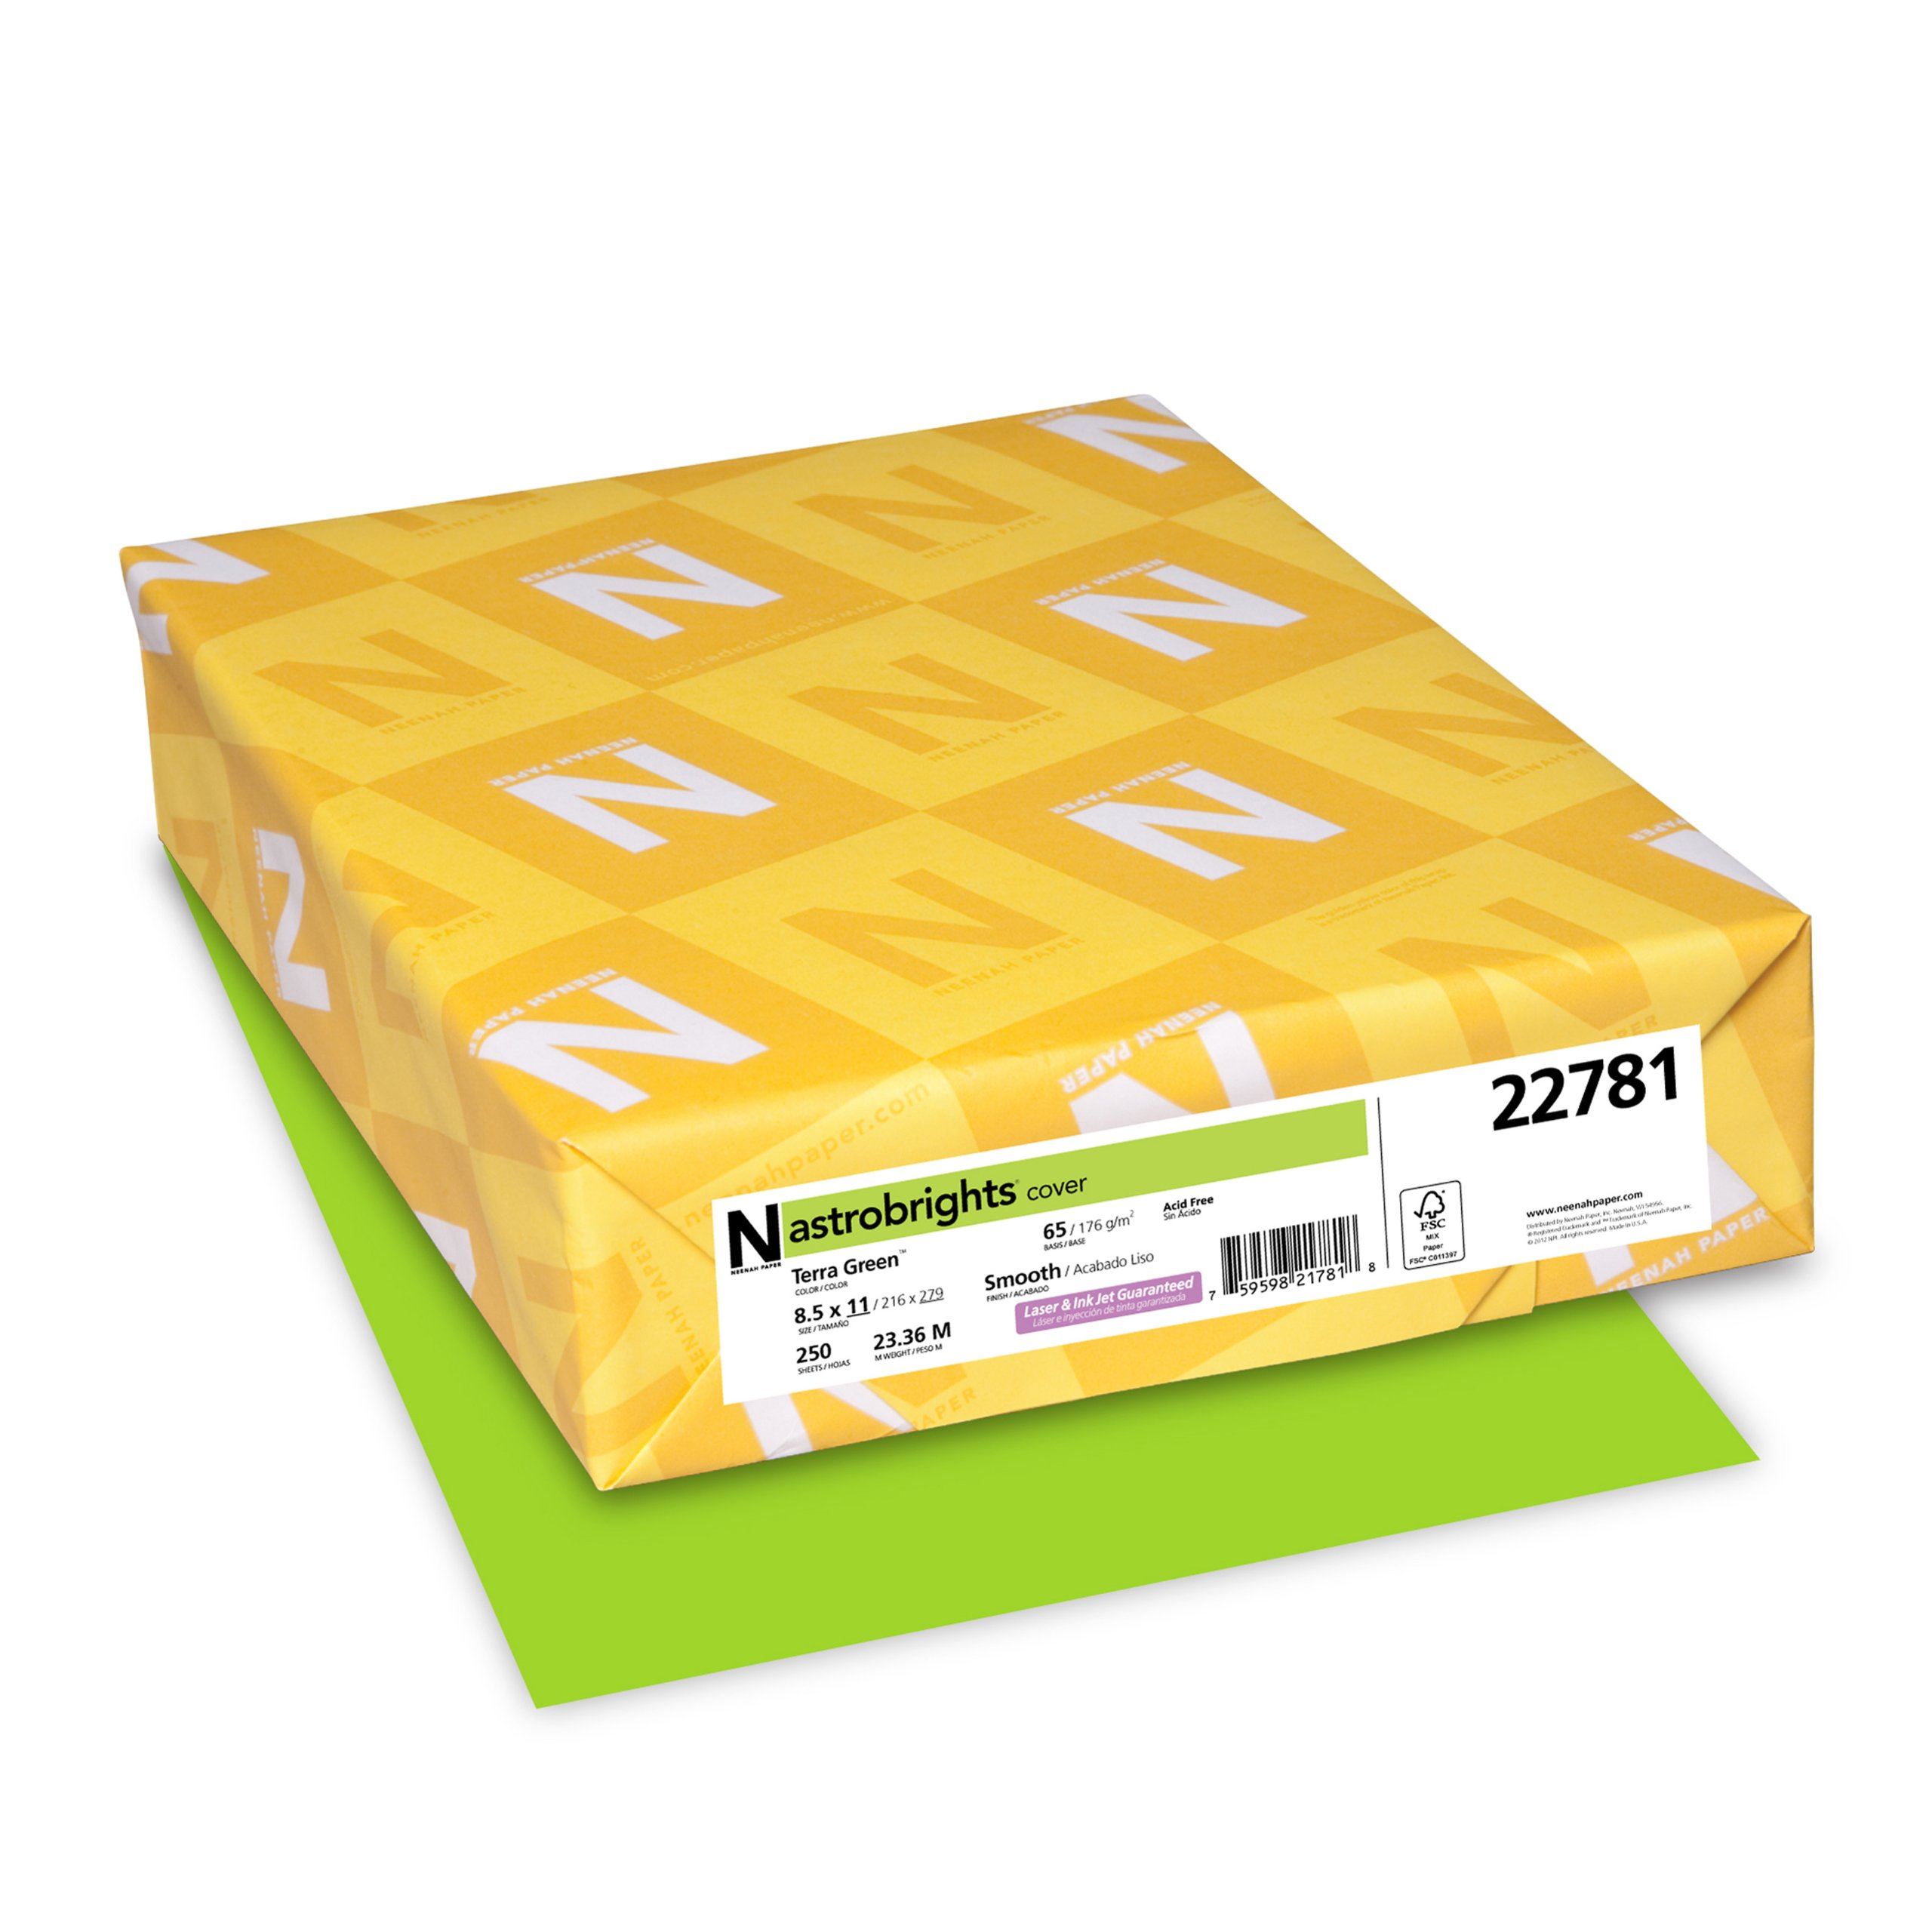 Astrobrights Colored Cardstock, 8.5 x 11, 65 lb/176 gsm, Terra Green, 250 Sheets (22781)